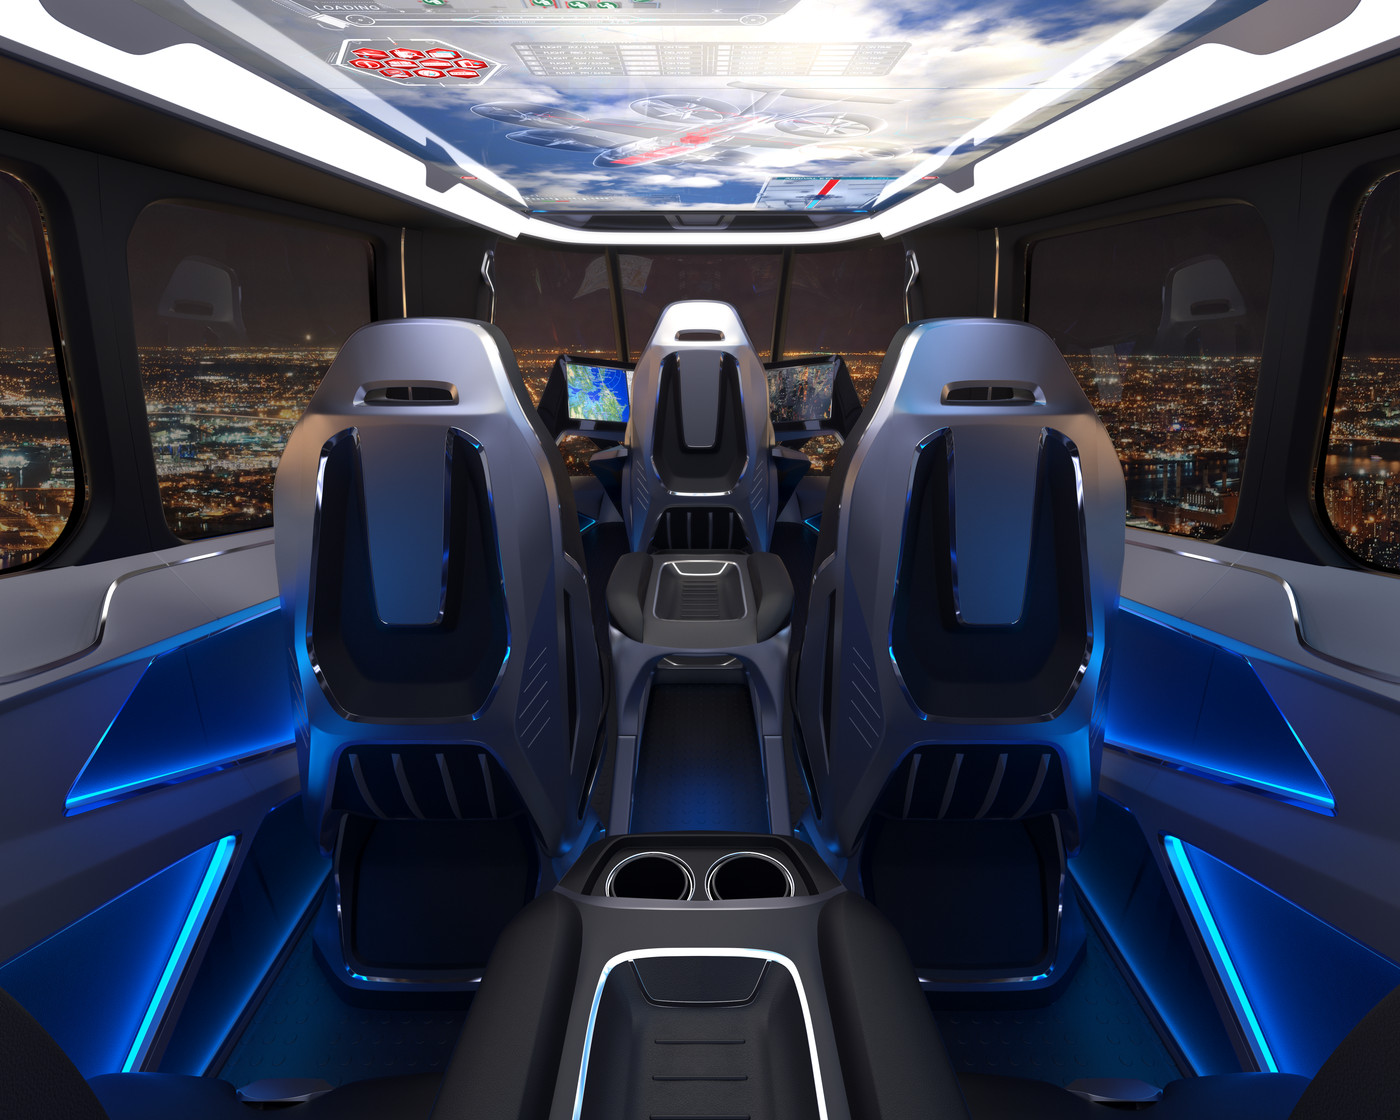 Bell's hybrid-electric flying car will be available via Uber